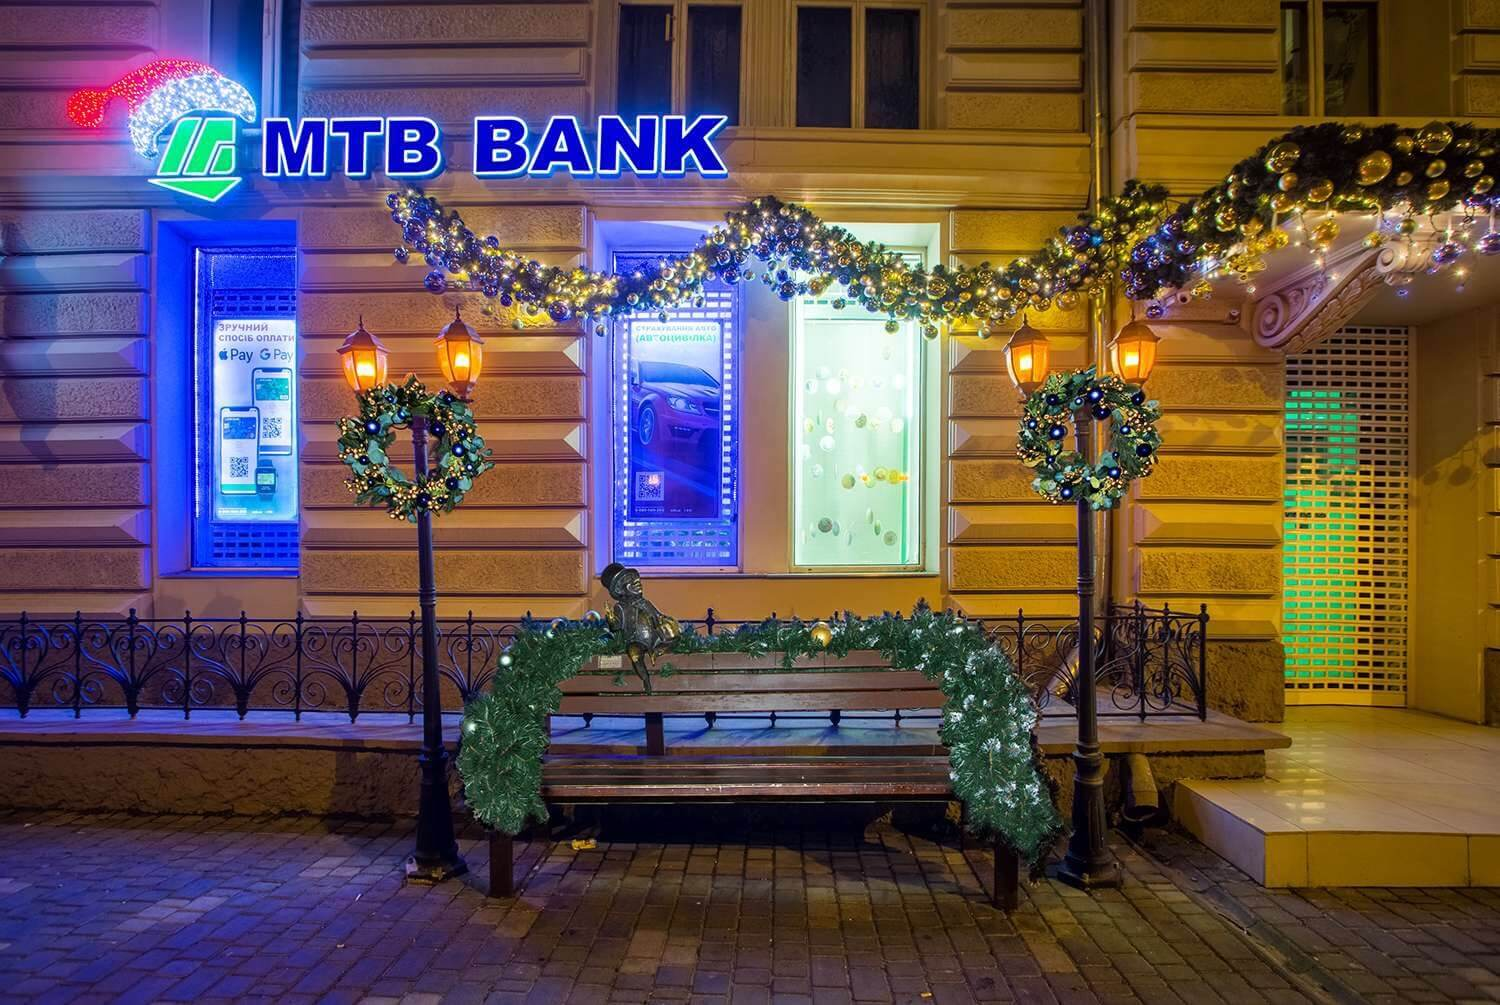 The NBU has set an operation hours schedule for banks during the quarantine New Year holidays. - photo - mtb.ua